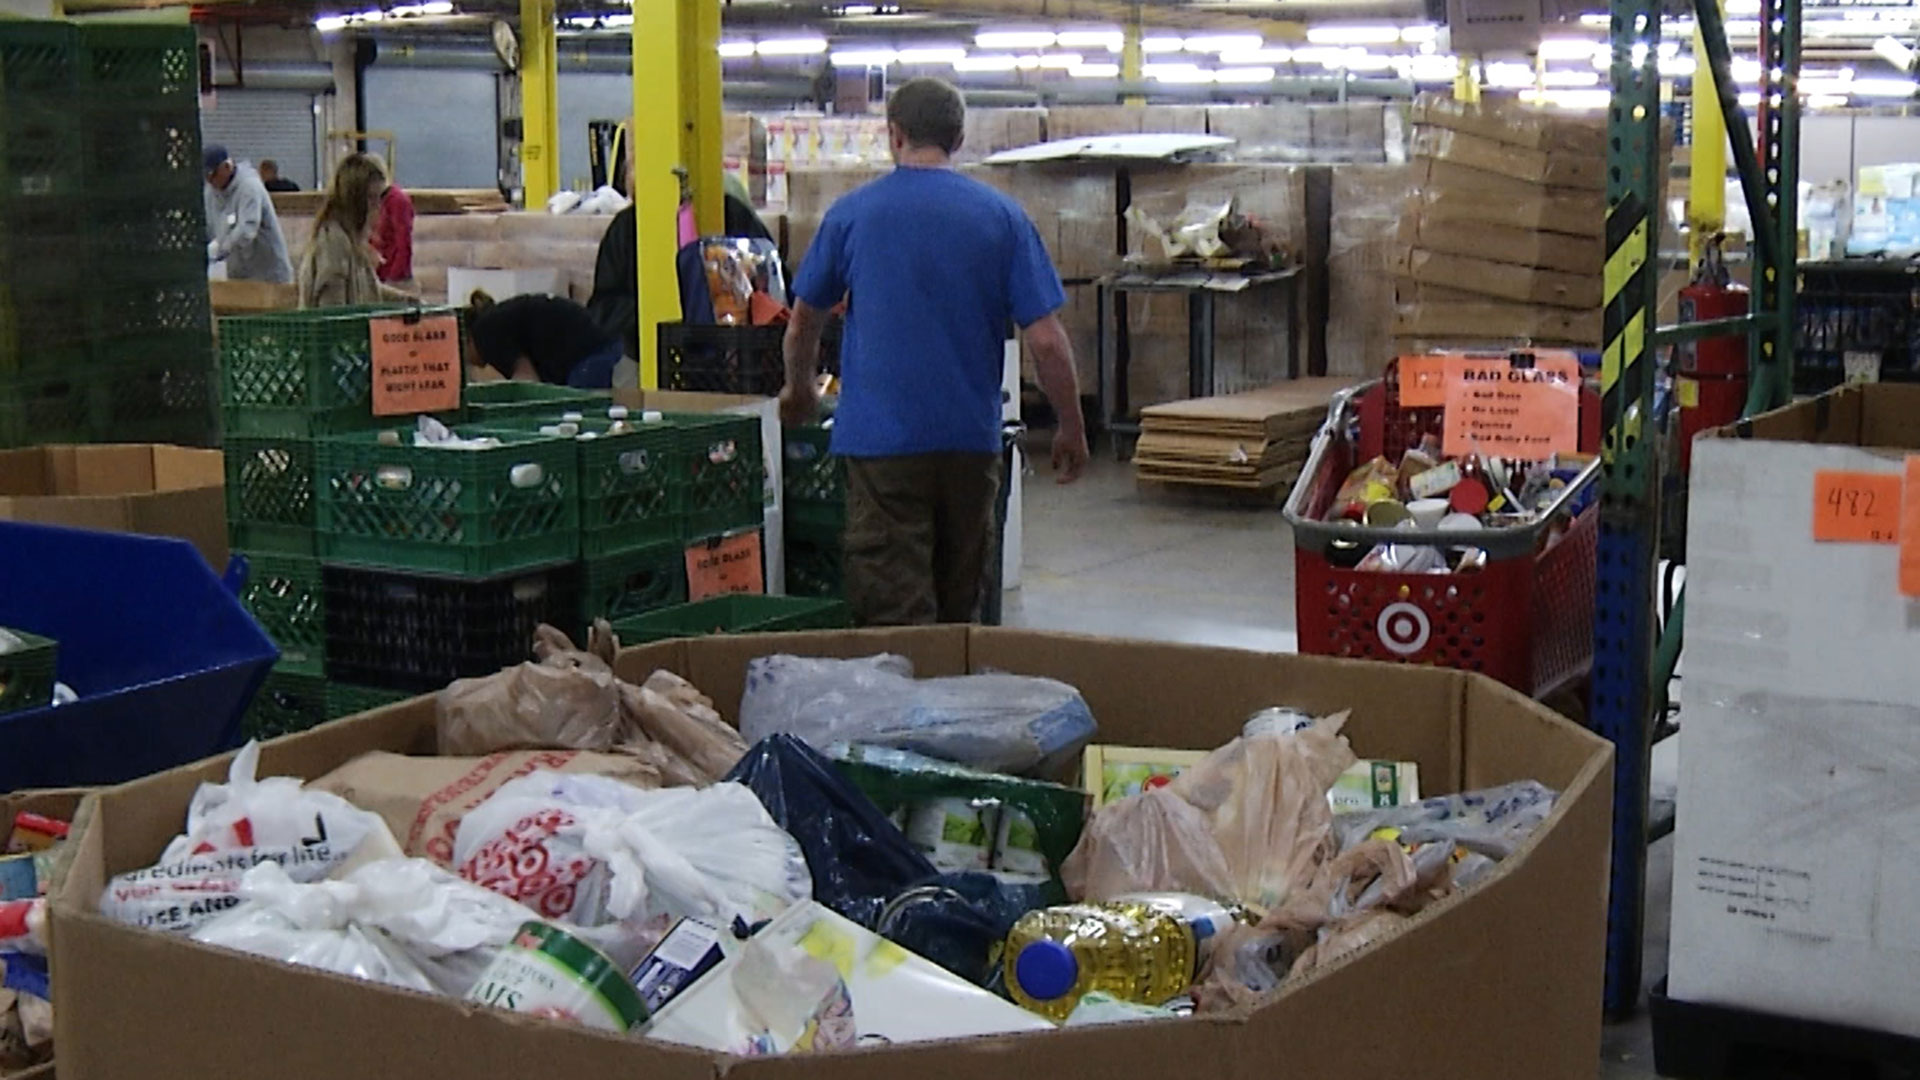 The Community Food Bank of Southern Arizona provides food to about 200,000 people each year.